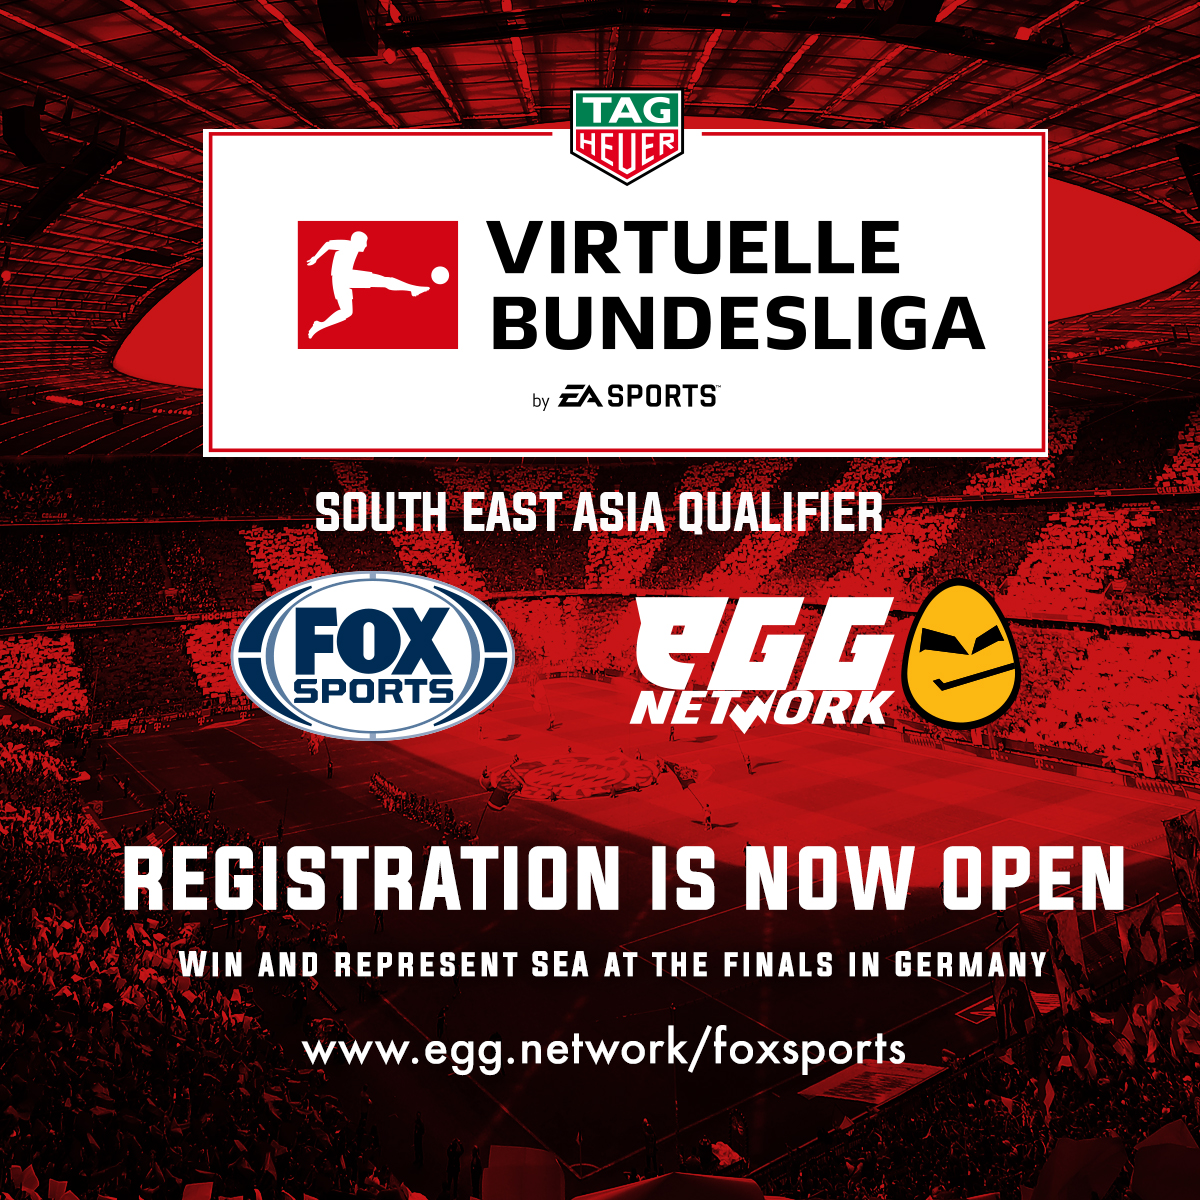 eGG Network & FOX Sports Asia present the Virtuelle Bundesliga South East Asia Qualifier